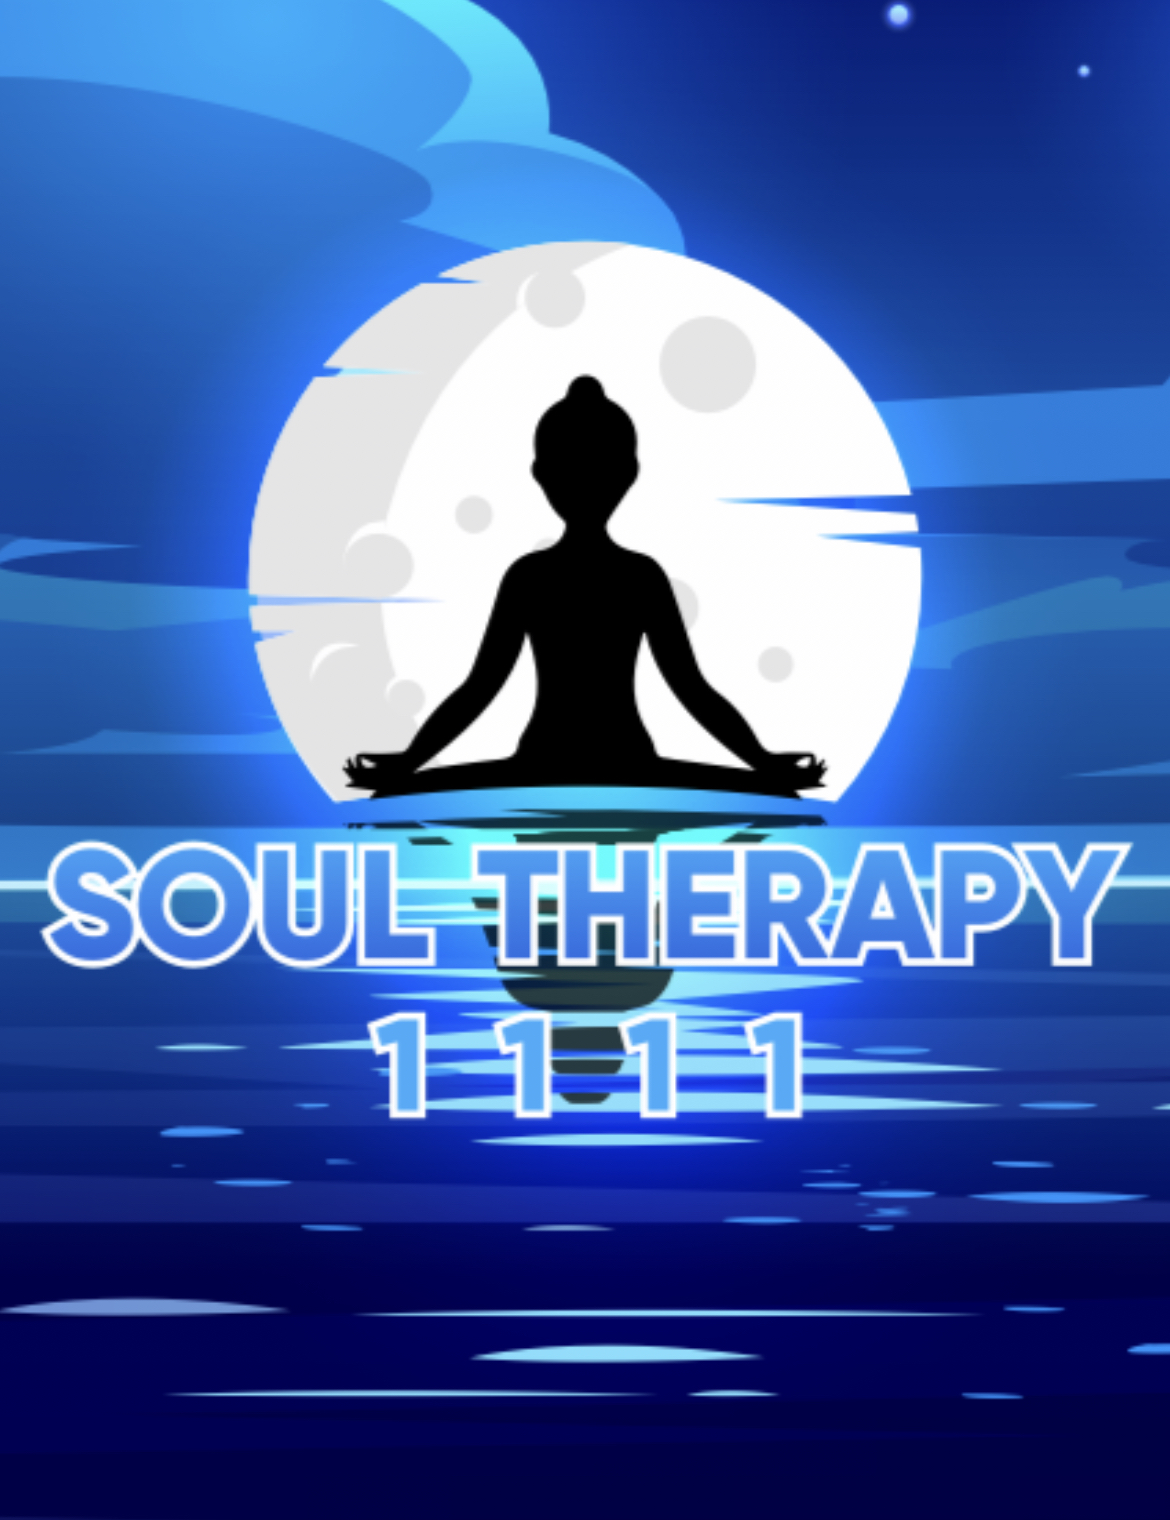 Soul Therapy 1111